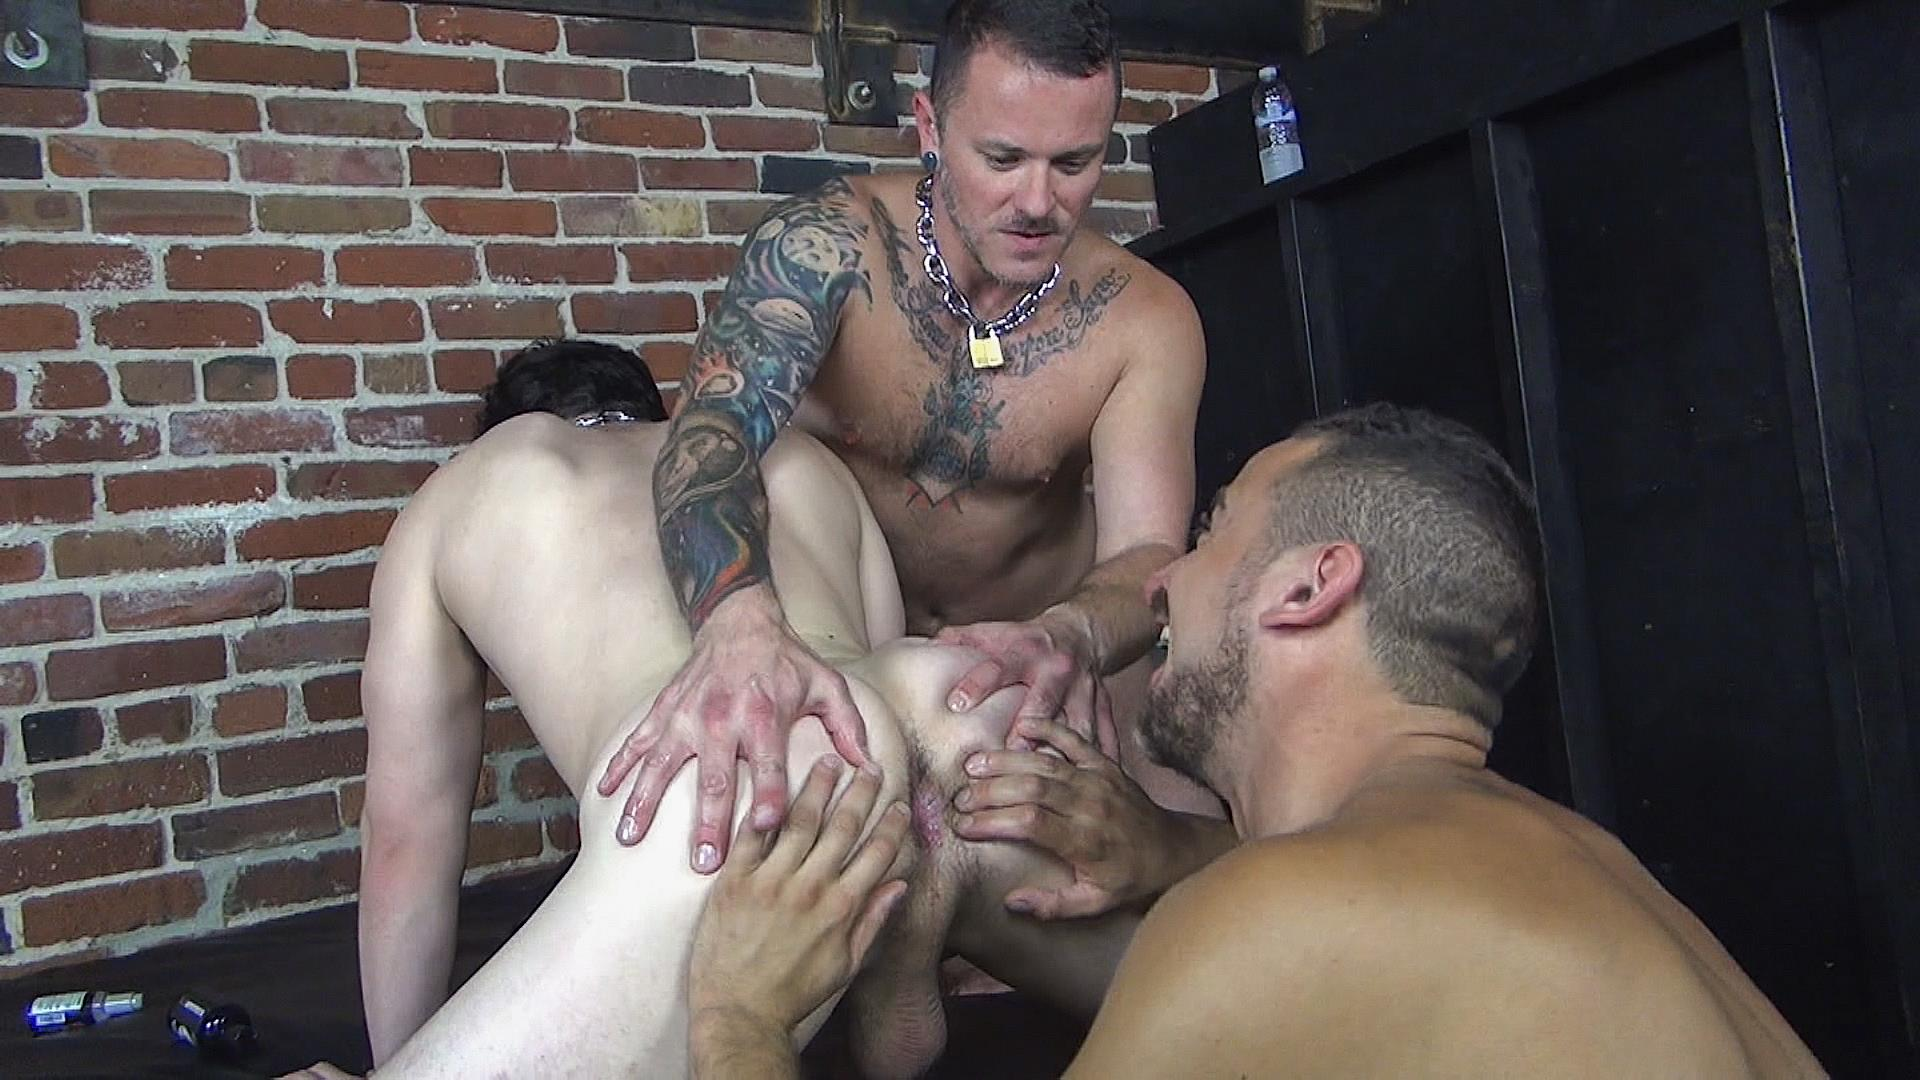 Raw Fuck Club Max Cameron and Jackson Fillmore and Leon Fox Bareback Double Penetration Amateur Gay Porn 01 Getting Double Penetrated Bareback By A Big Uncut Cock